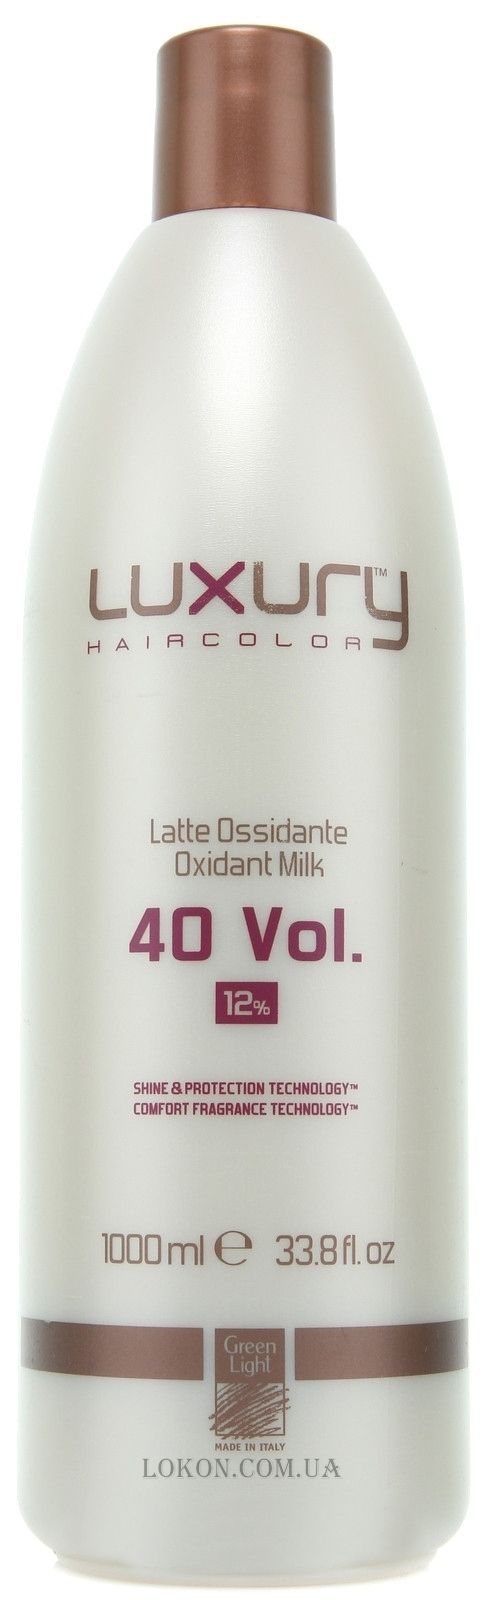 GREEN LIGHT Luxury Oxidant Milk 40 Vol. 12% - Молочный оксидант 40 Vol. 12%